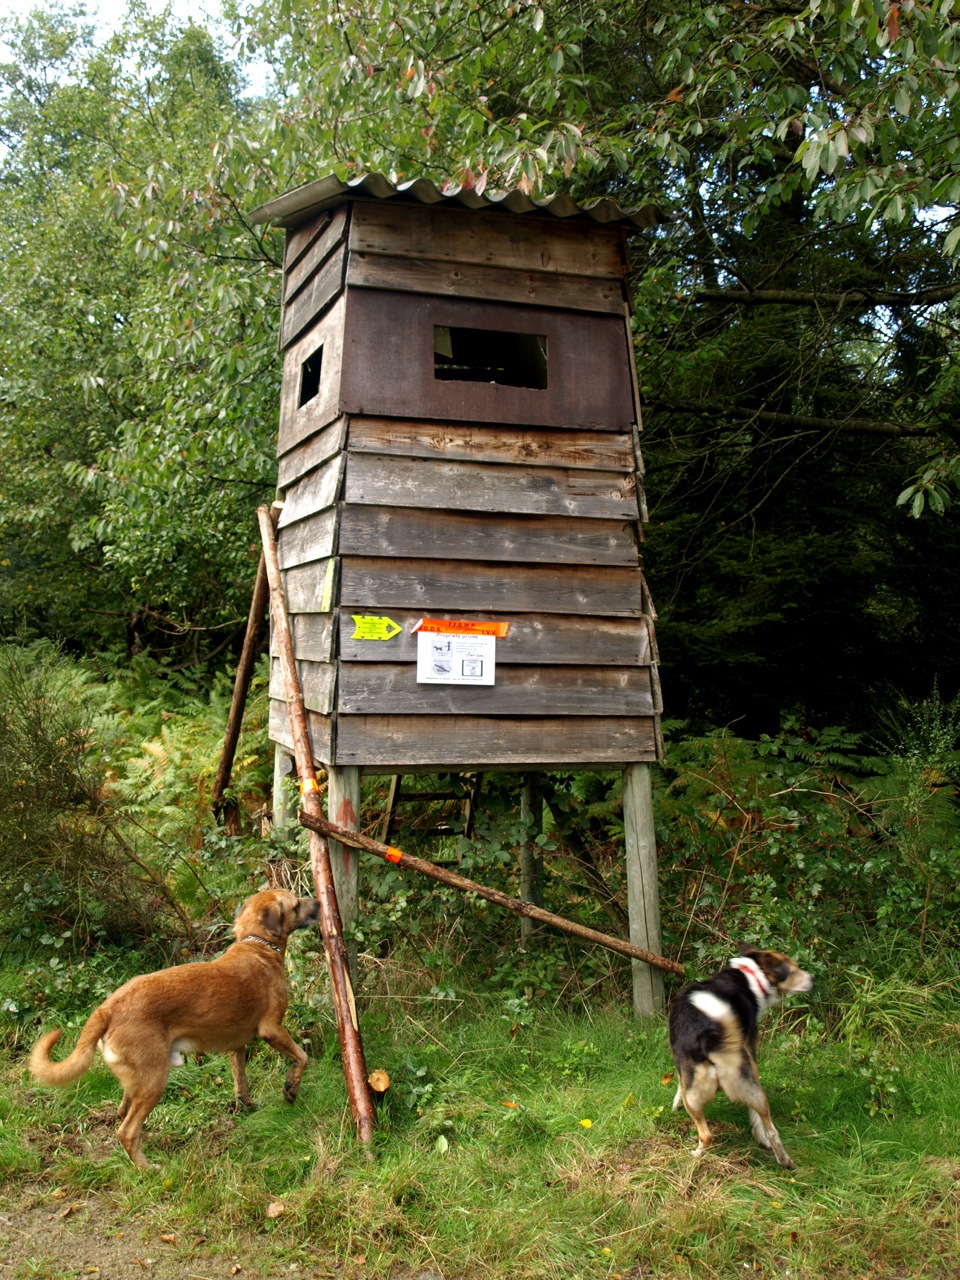 Home Made Deer Shooting Houses submited images